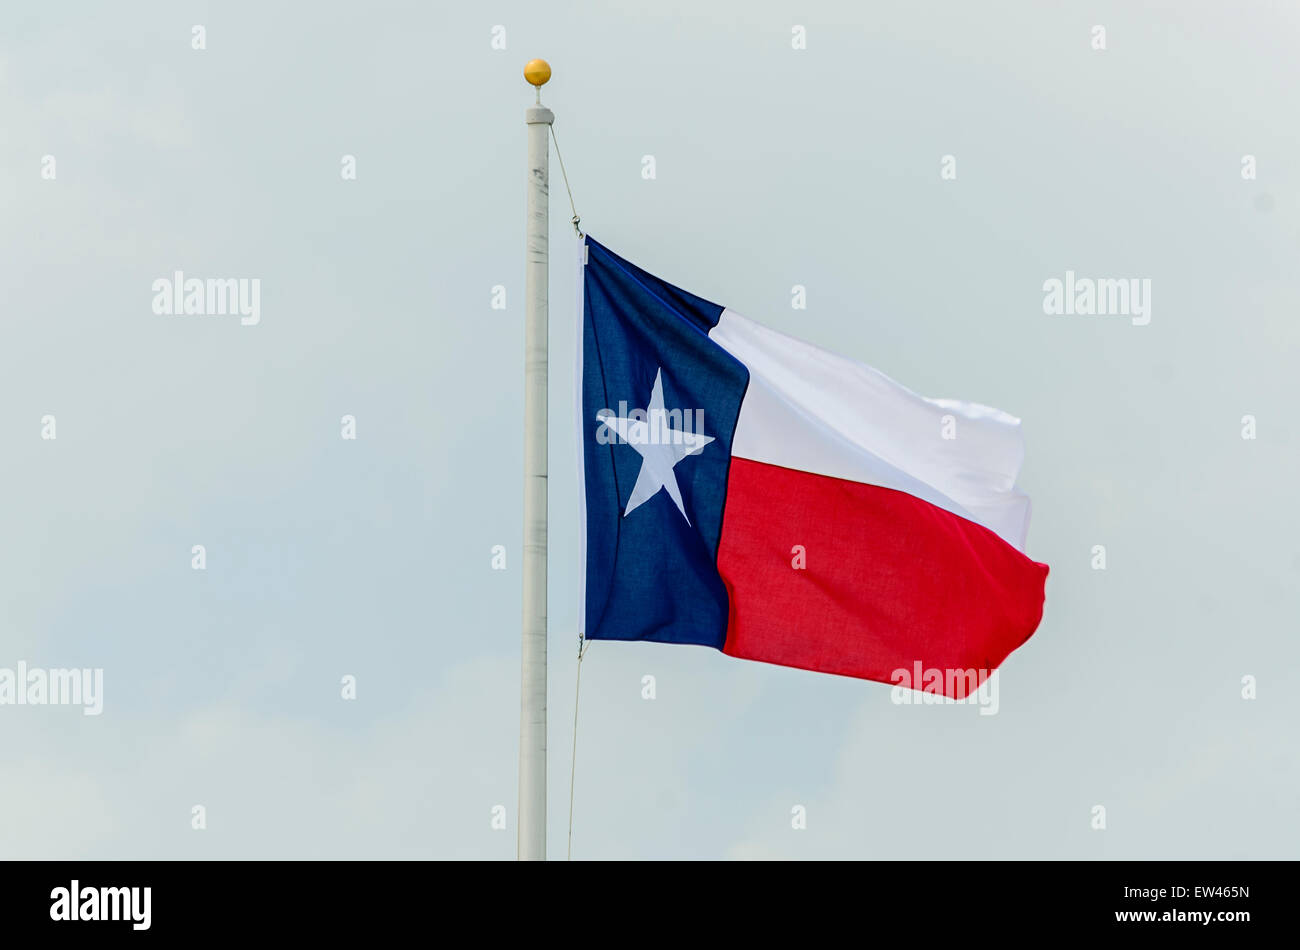 The Texas State flag flying from a flagpole against a pale blue sky. Texas, USA. - Stock Image